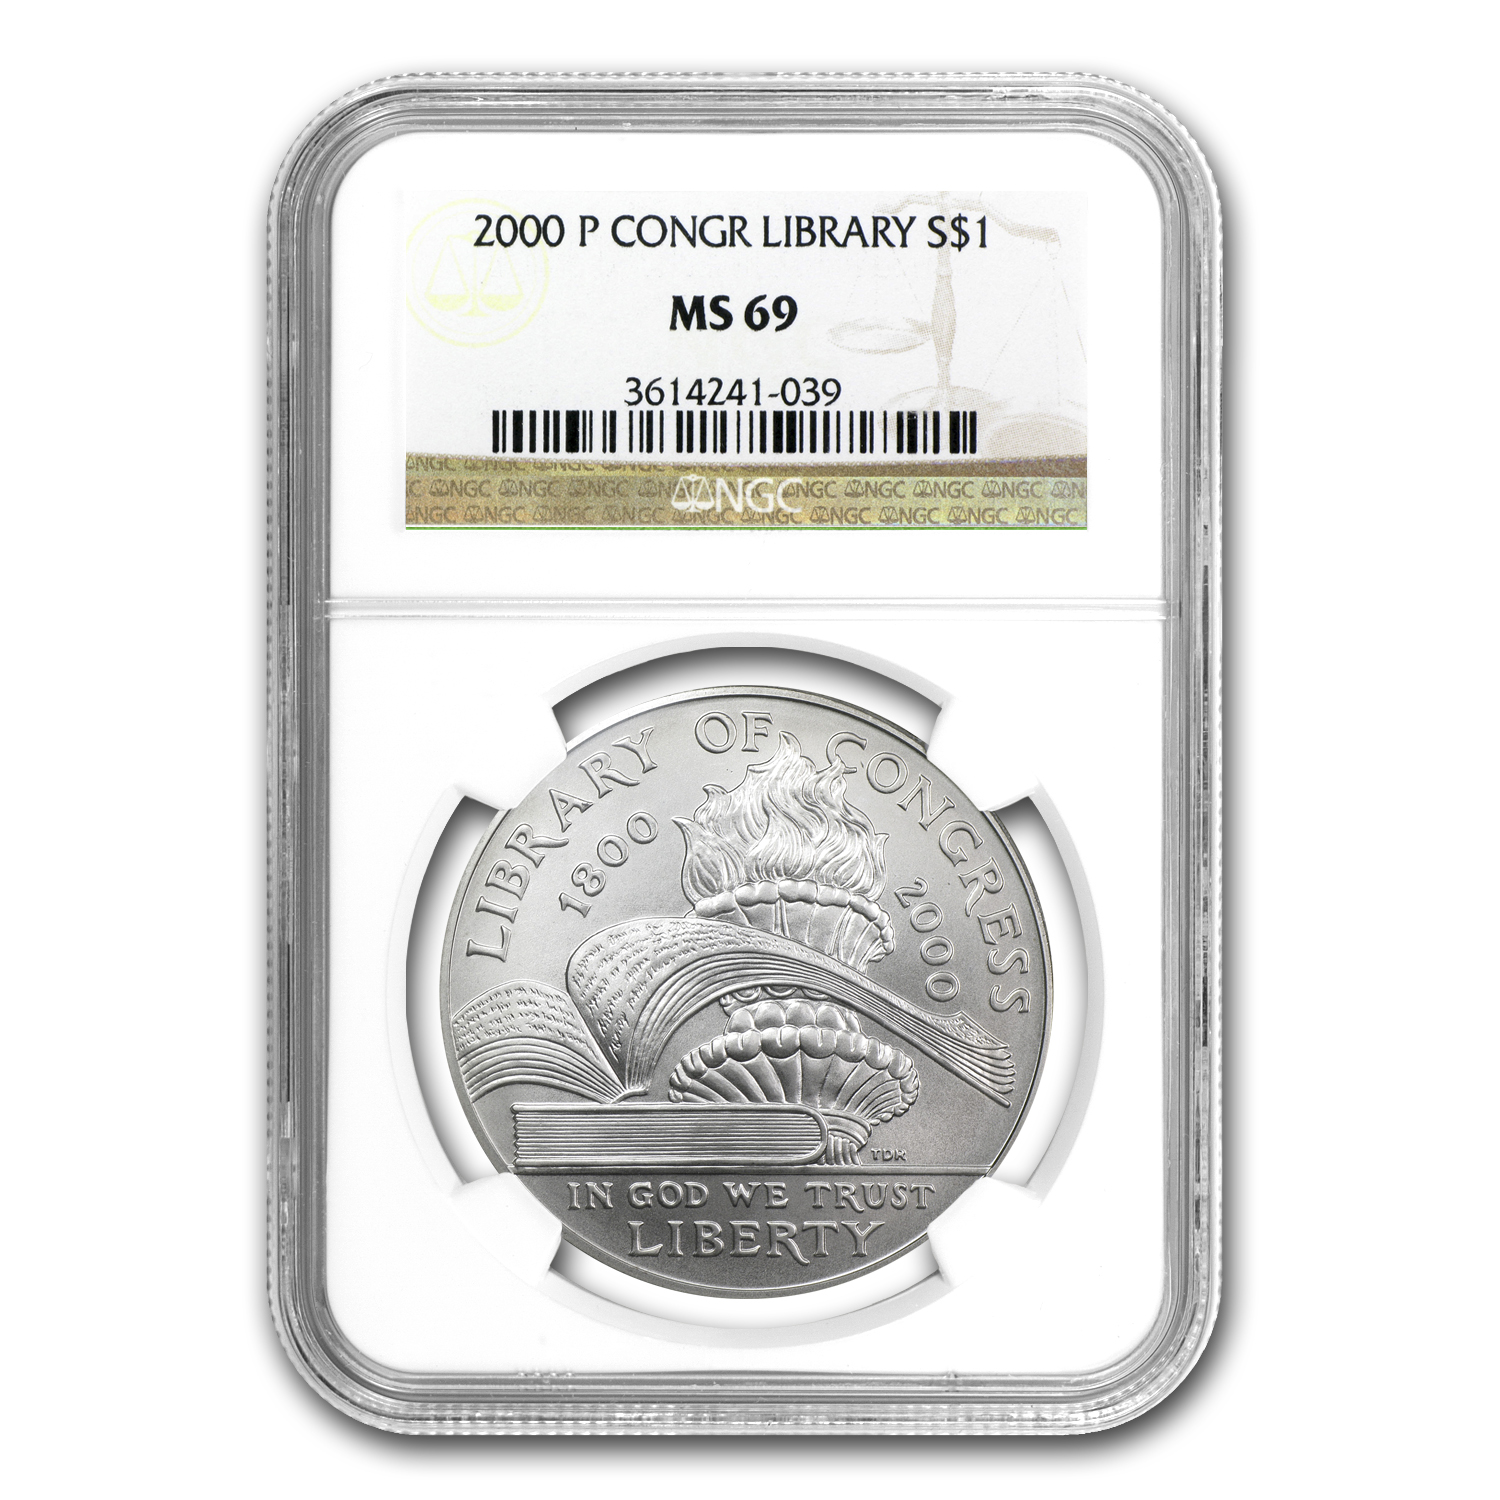 2000-P Library of Congress $1 Silver Commemorative - MS-69 NGC